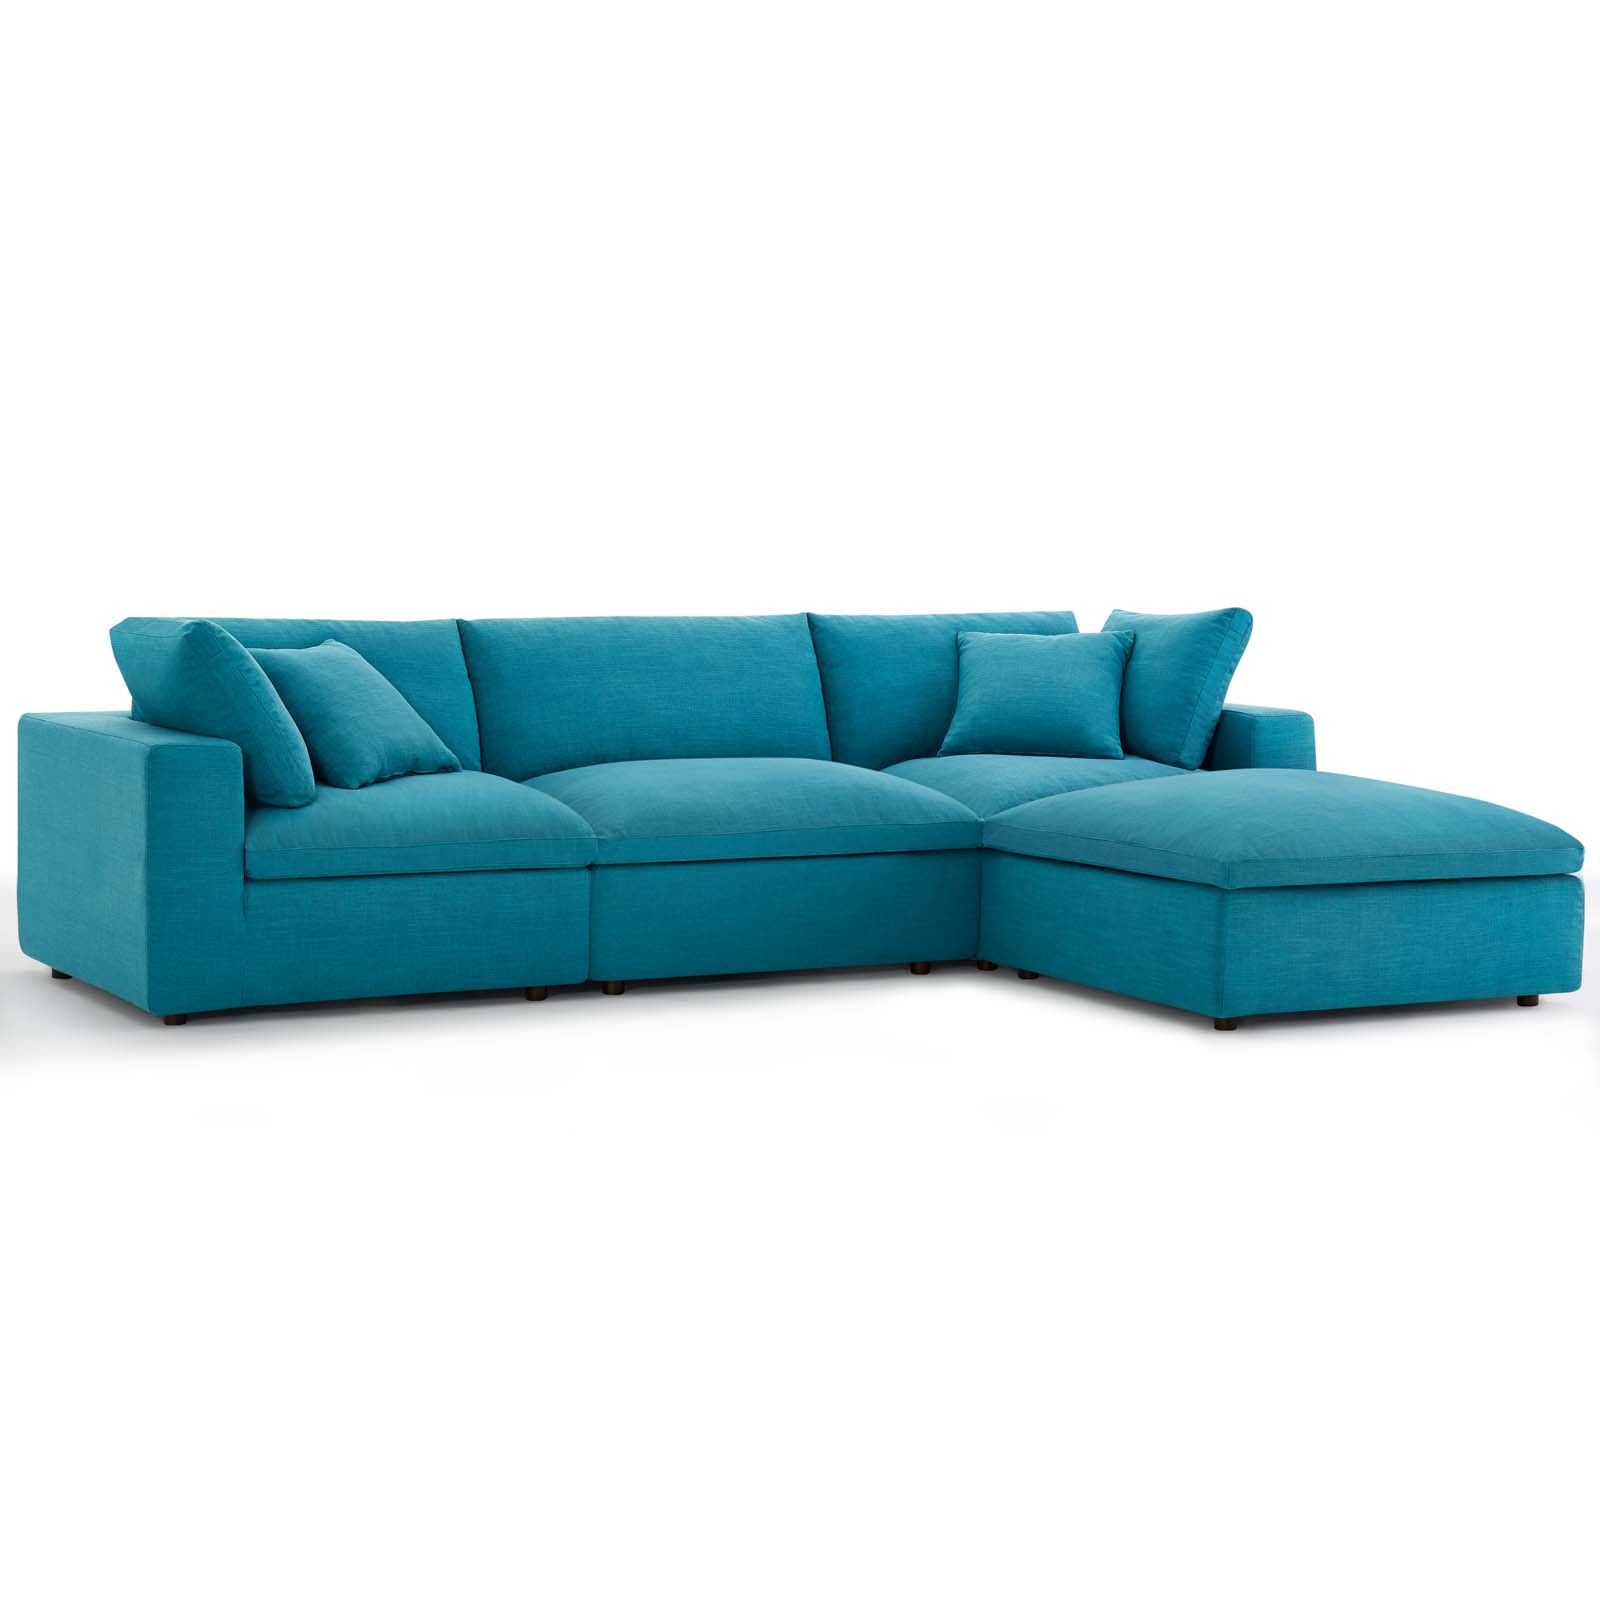 Commix Down Filled Overstuffed 4 Piece Sectional Sofa Set Teal Inside Down Filled Sectional Sofas (View 11 of 15)